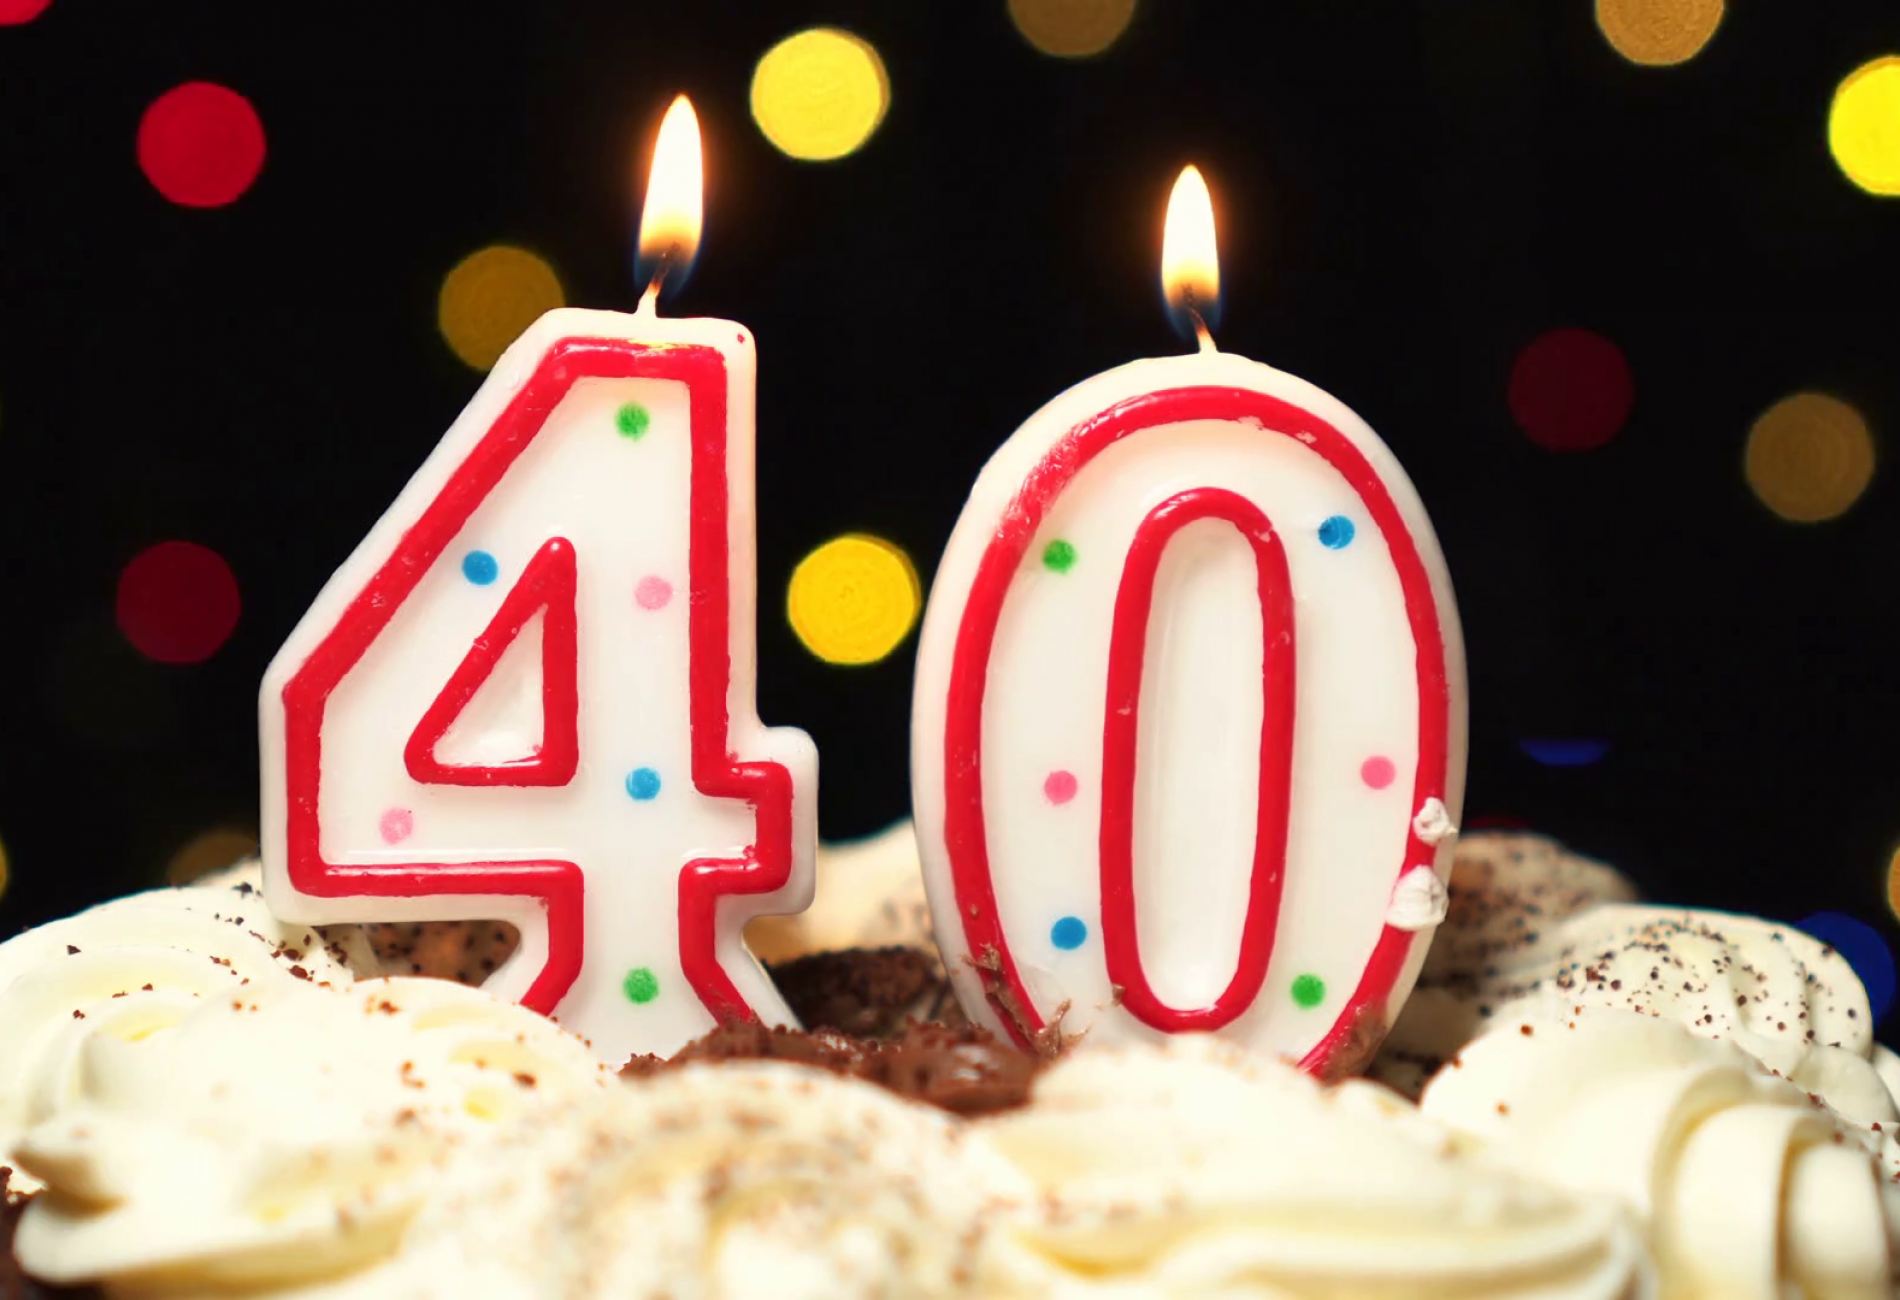 videoblocks-number-40-on-top-of-cake-forty-birthday-candle-burning-blow-out-at-the-end-color-blurred-background_snq3ghsrm_thumbnail-full01